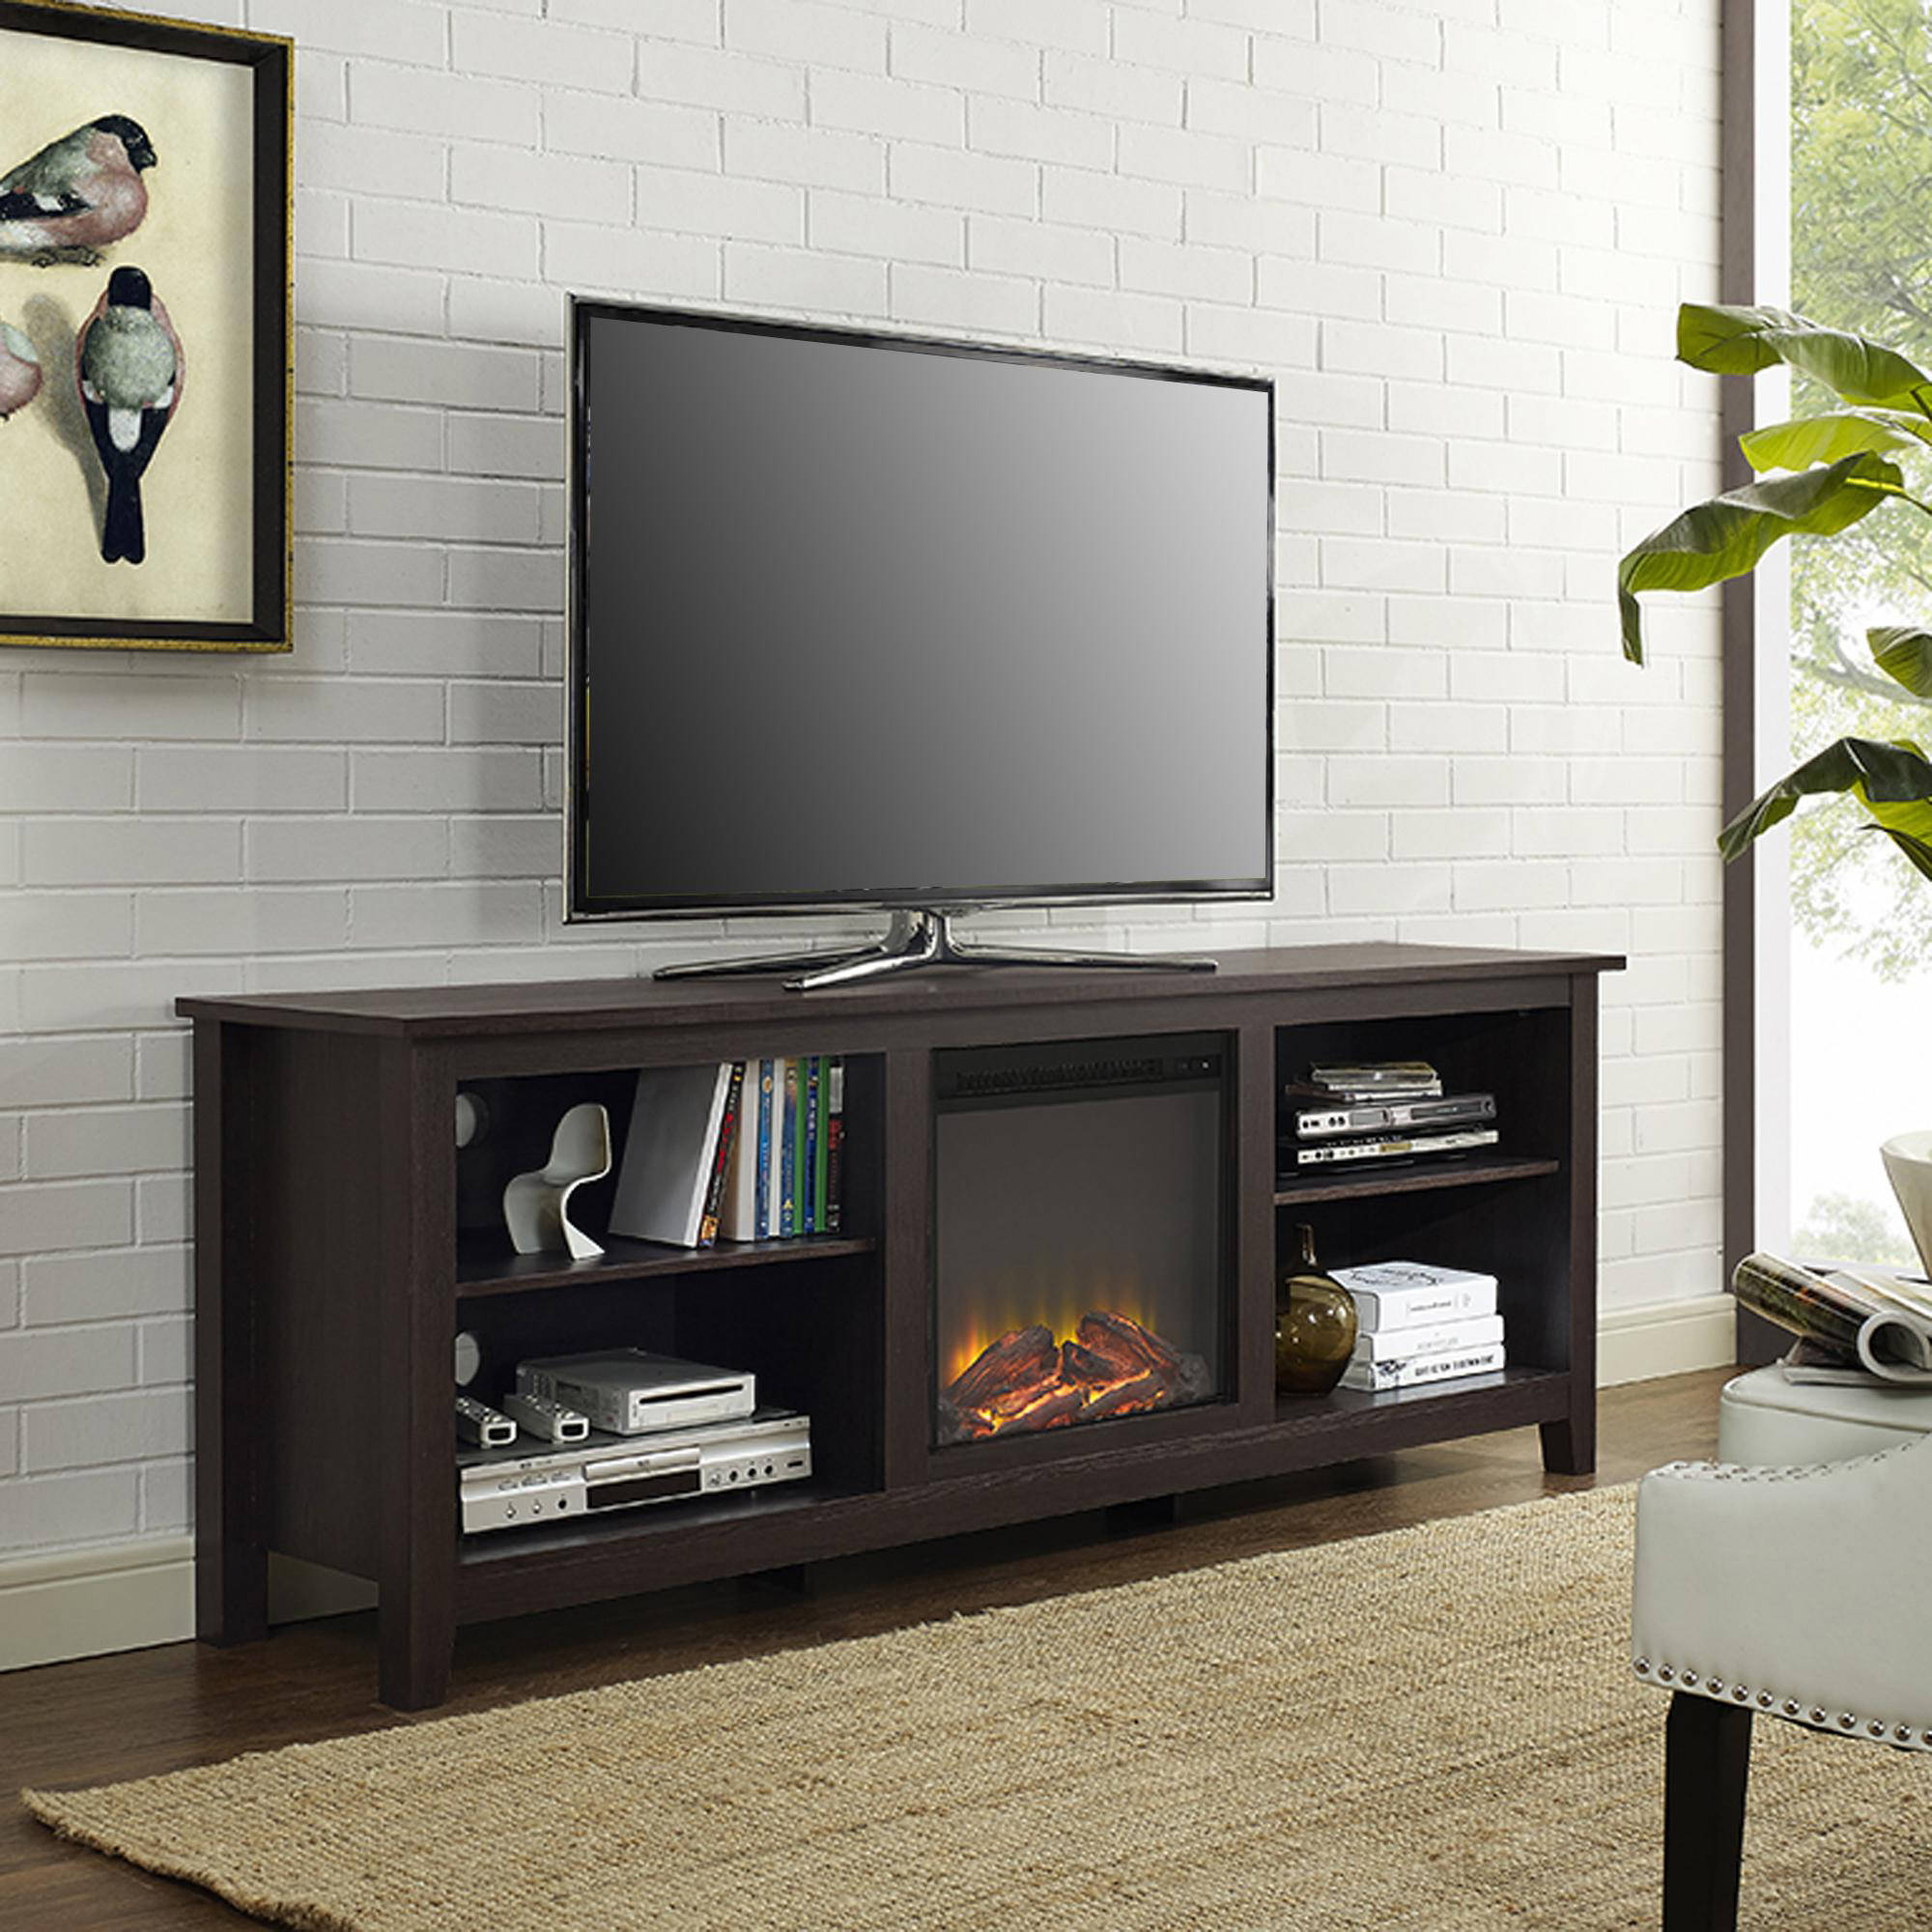 """Preferred Tv Stands For Large Tvs Throughout 70"""" Fireplace Tv Media Storage Stand For Tv's Up To 75"""" Espresso (View 9 of 20)"""